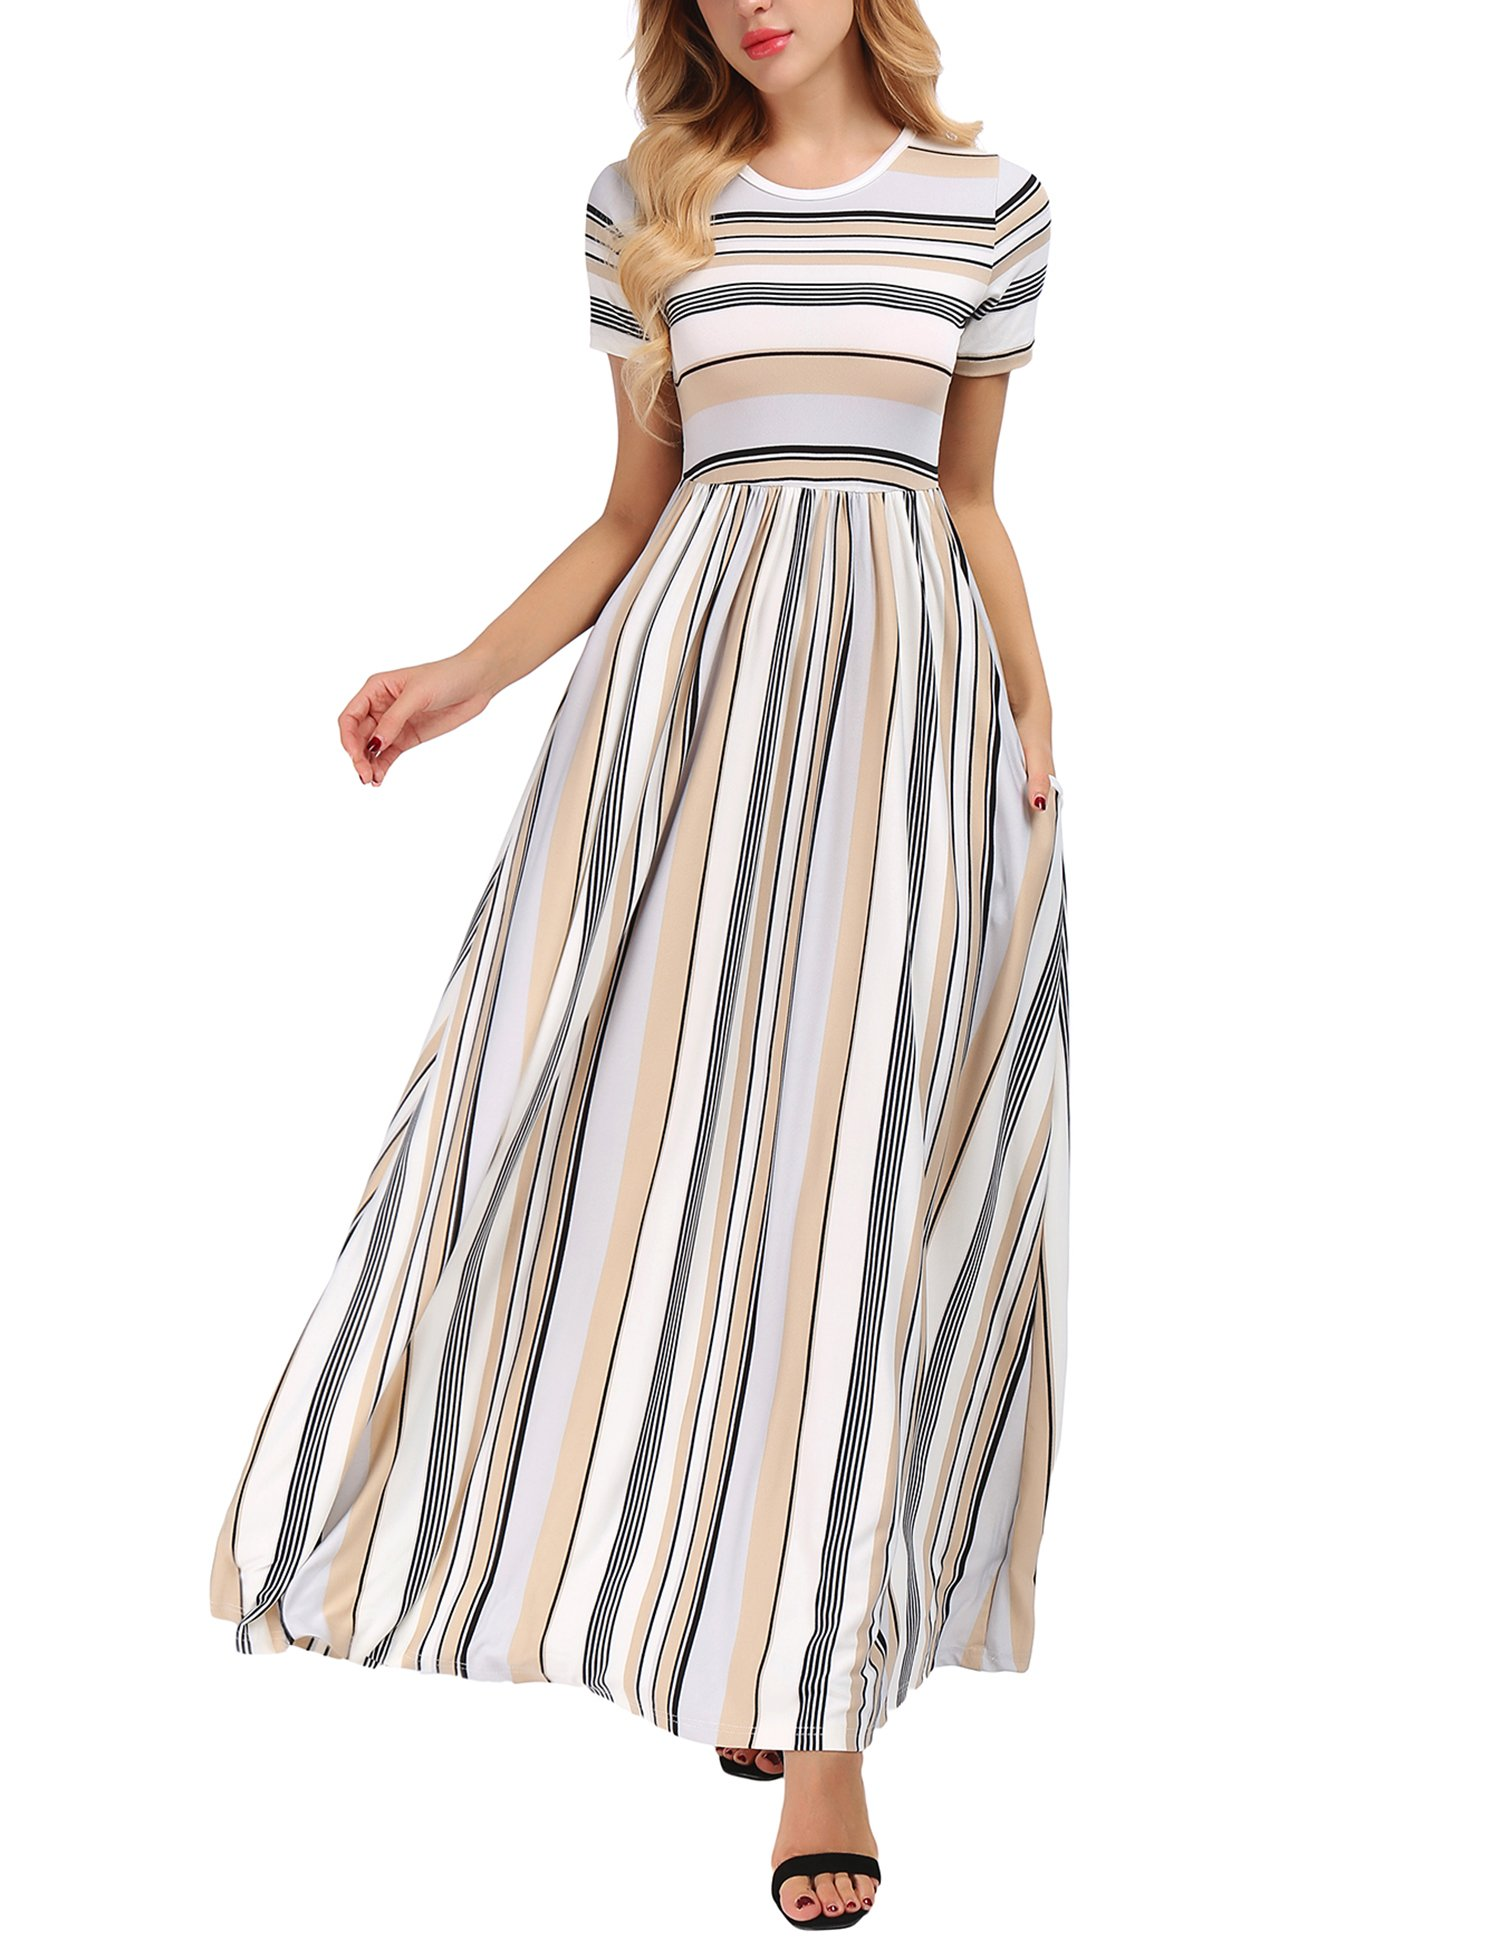 Uniboutique Women's Casual Long Sleeve Elastic Waist Striped Maxi Dress with Pockets